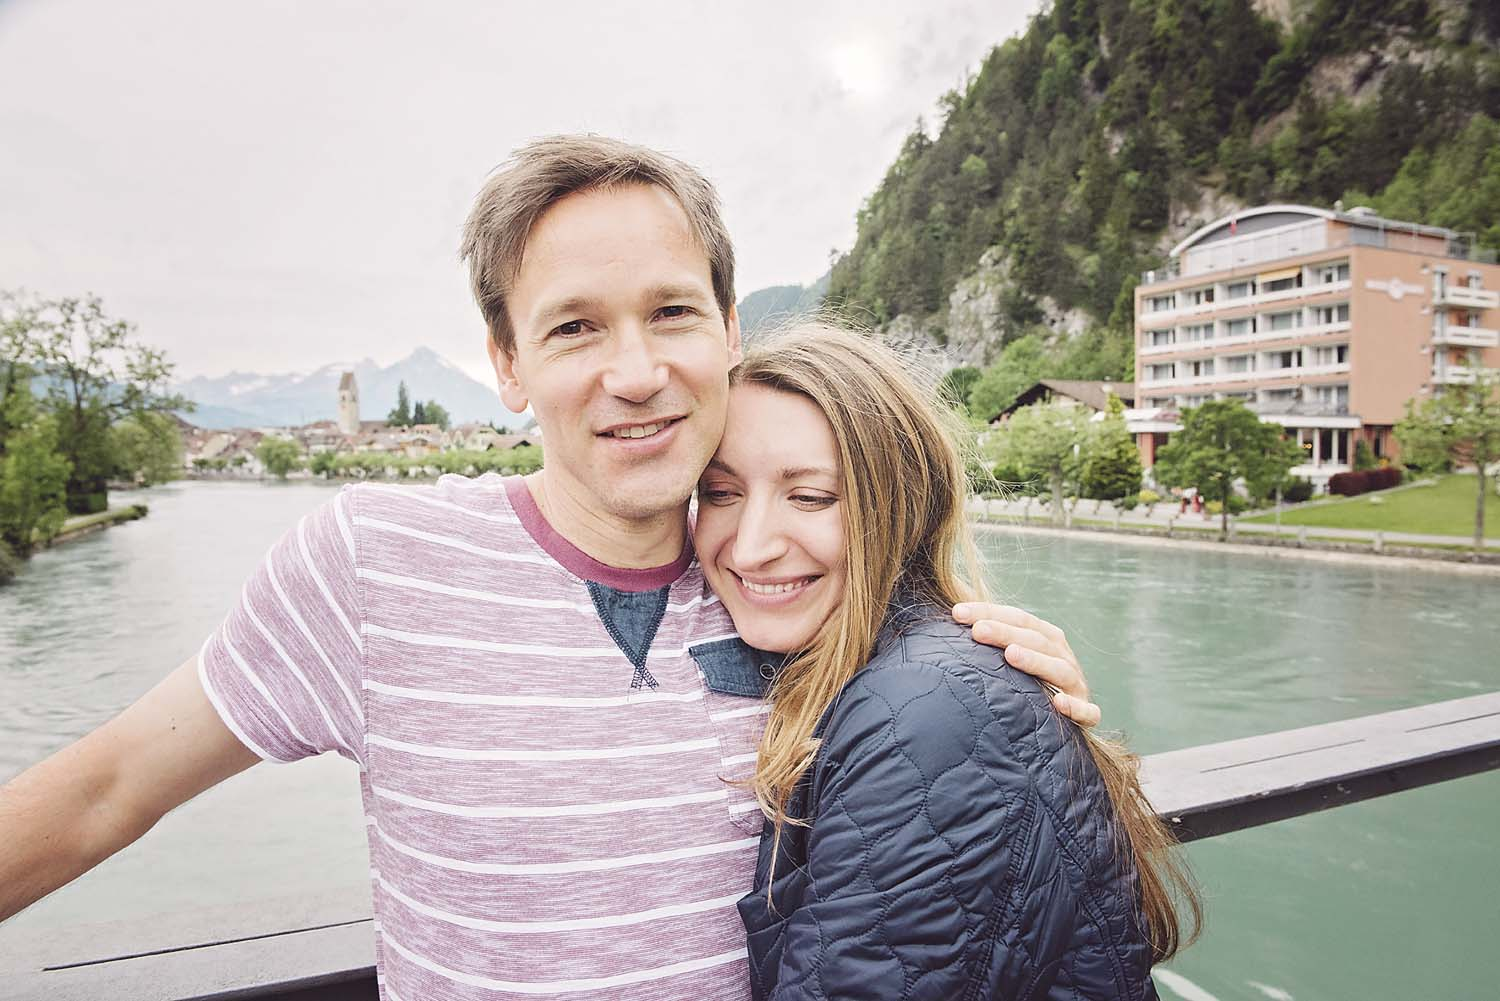 Prewedding photoshoot in Interlaken